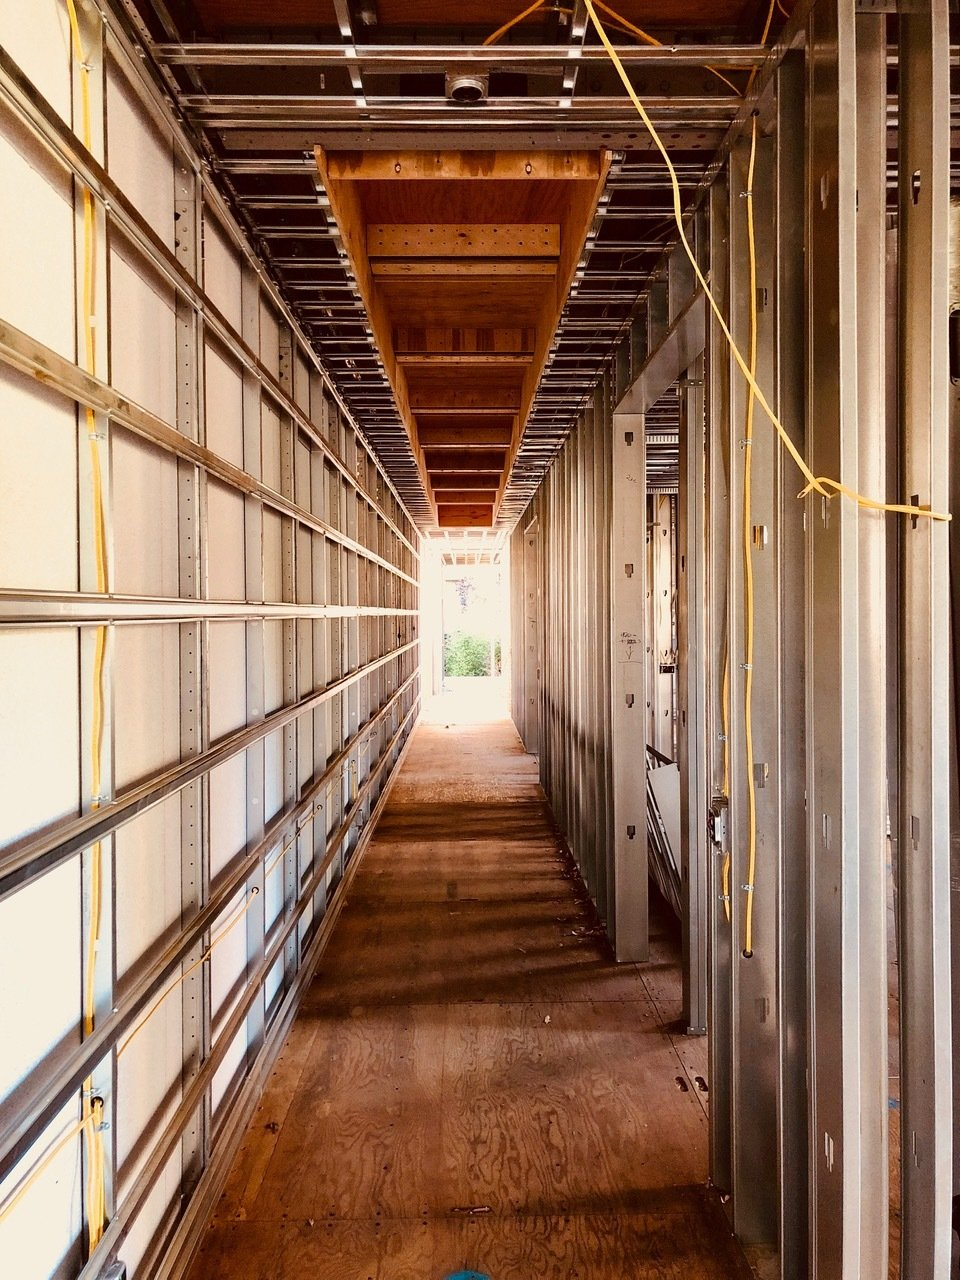 Hallway With the help of BONE Structure steel framework, electrical wires can be easily routed through pre-cut openings  Photo 7 of 7 in Dan Brunn Architecture and Dwell Break Ground on Bridge House in L.A.